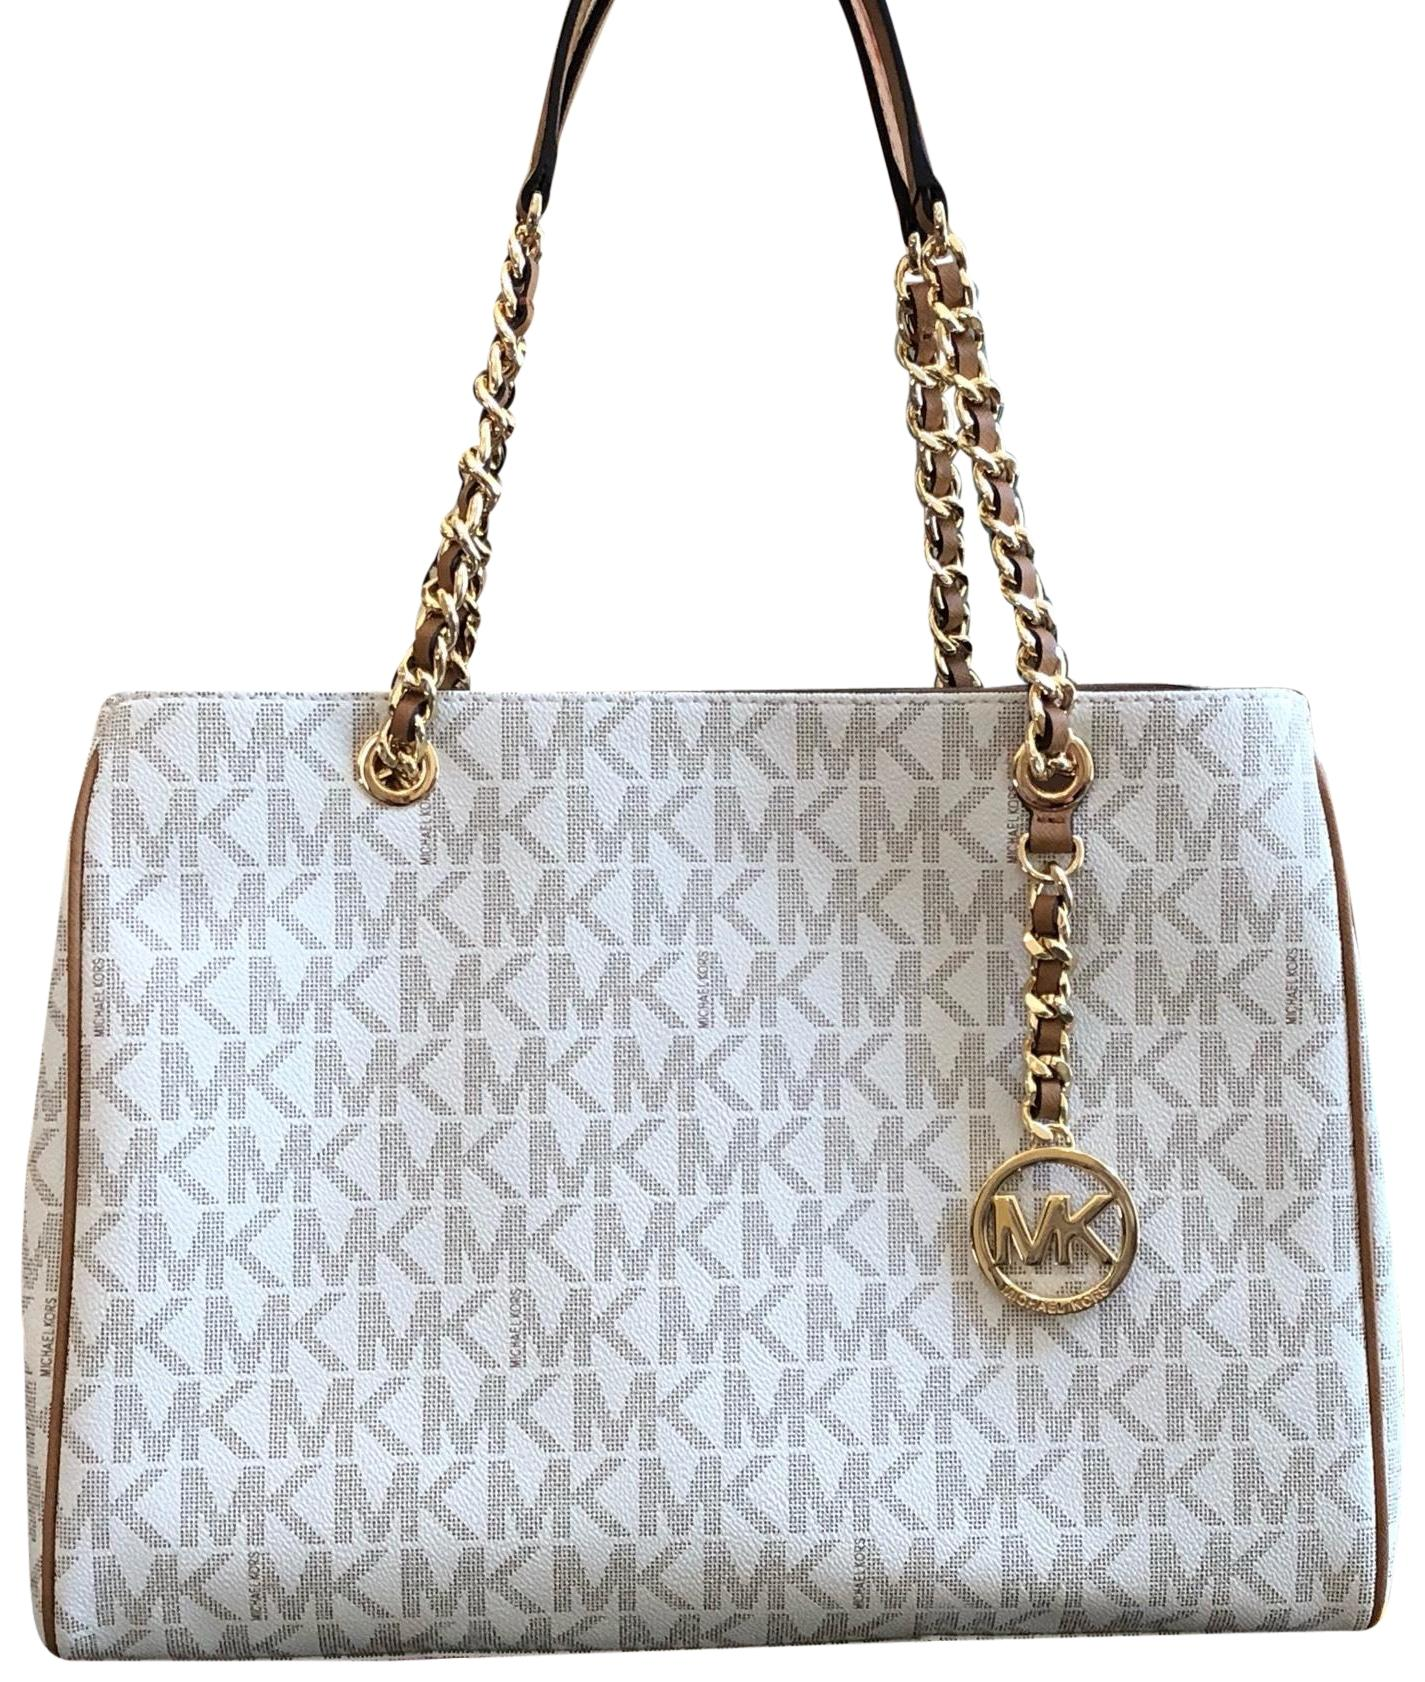 e8a338ad1e92 ... where can i buy michael kors signature monogram chain satchel floral  embroidery tote in vanilla acorn